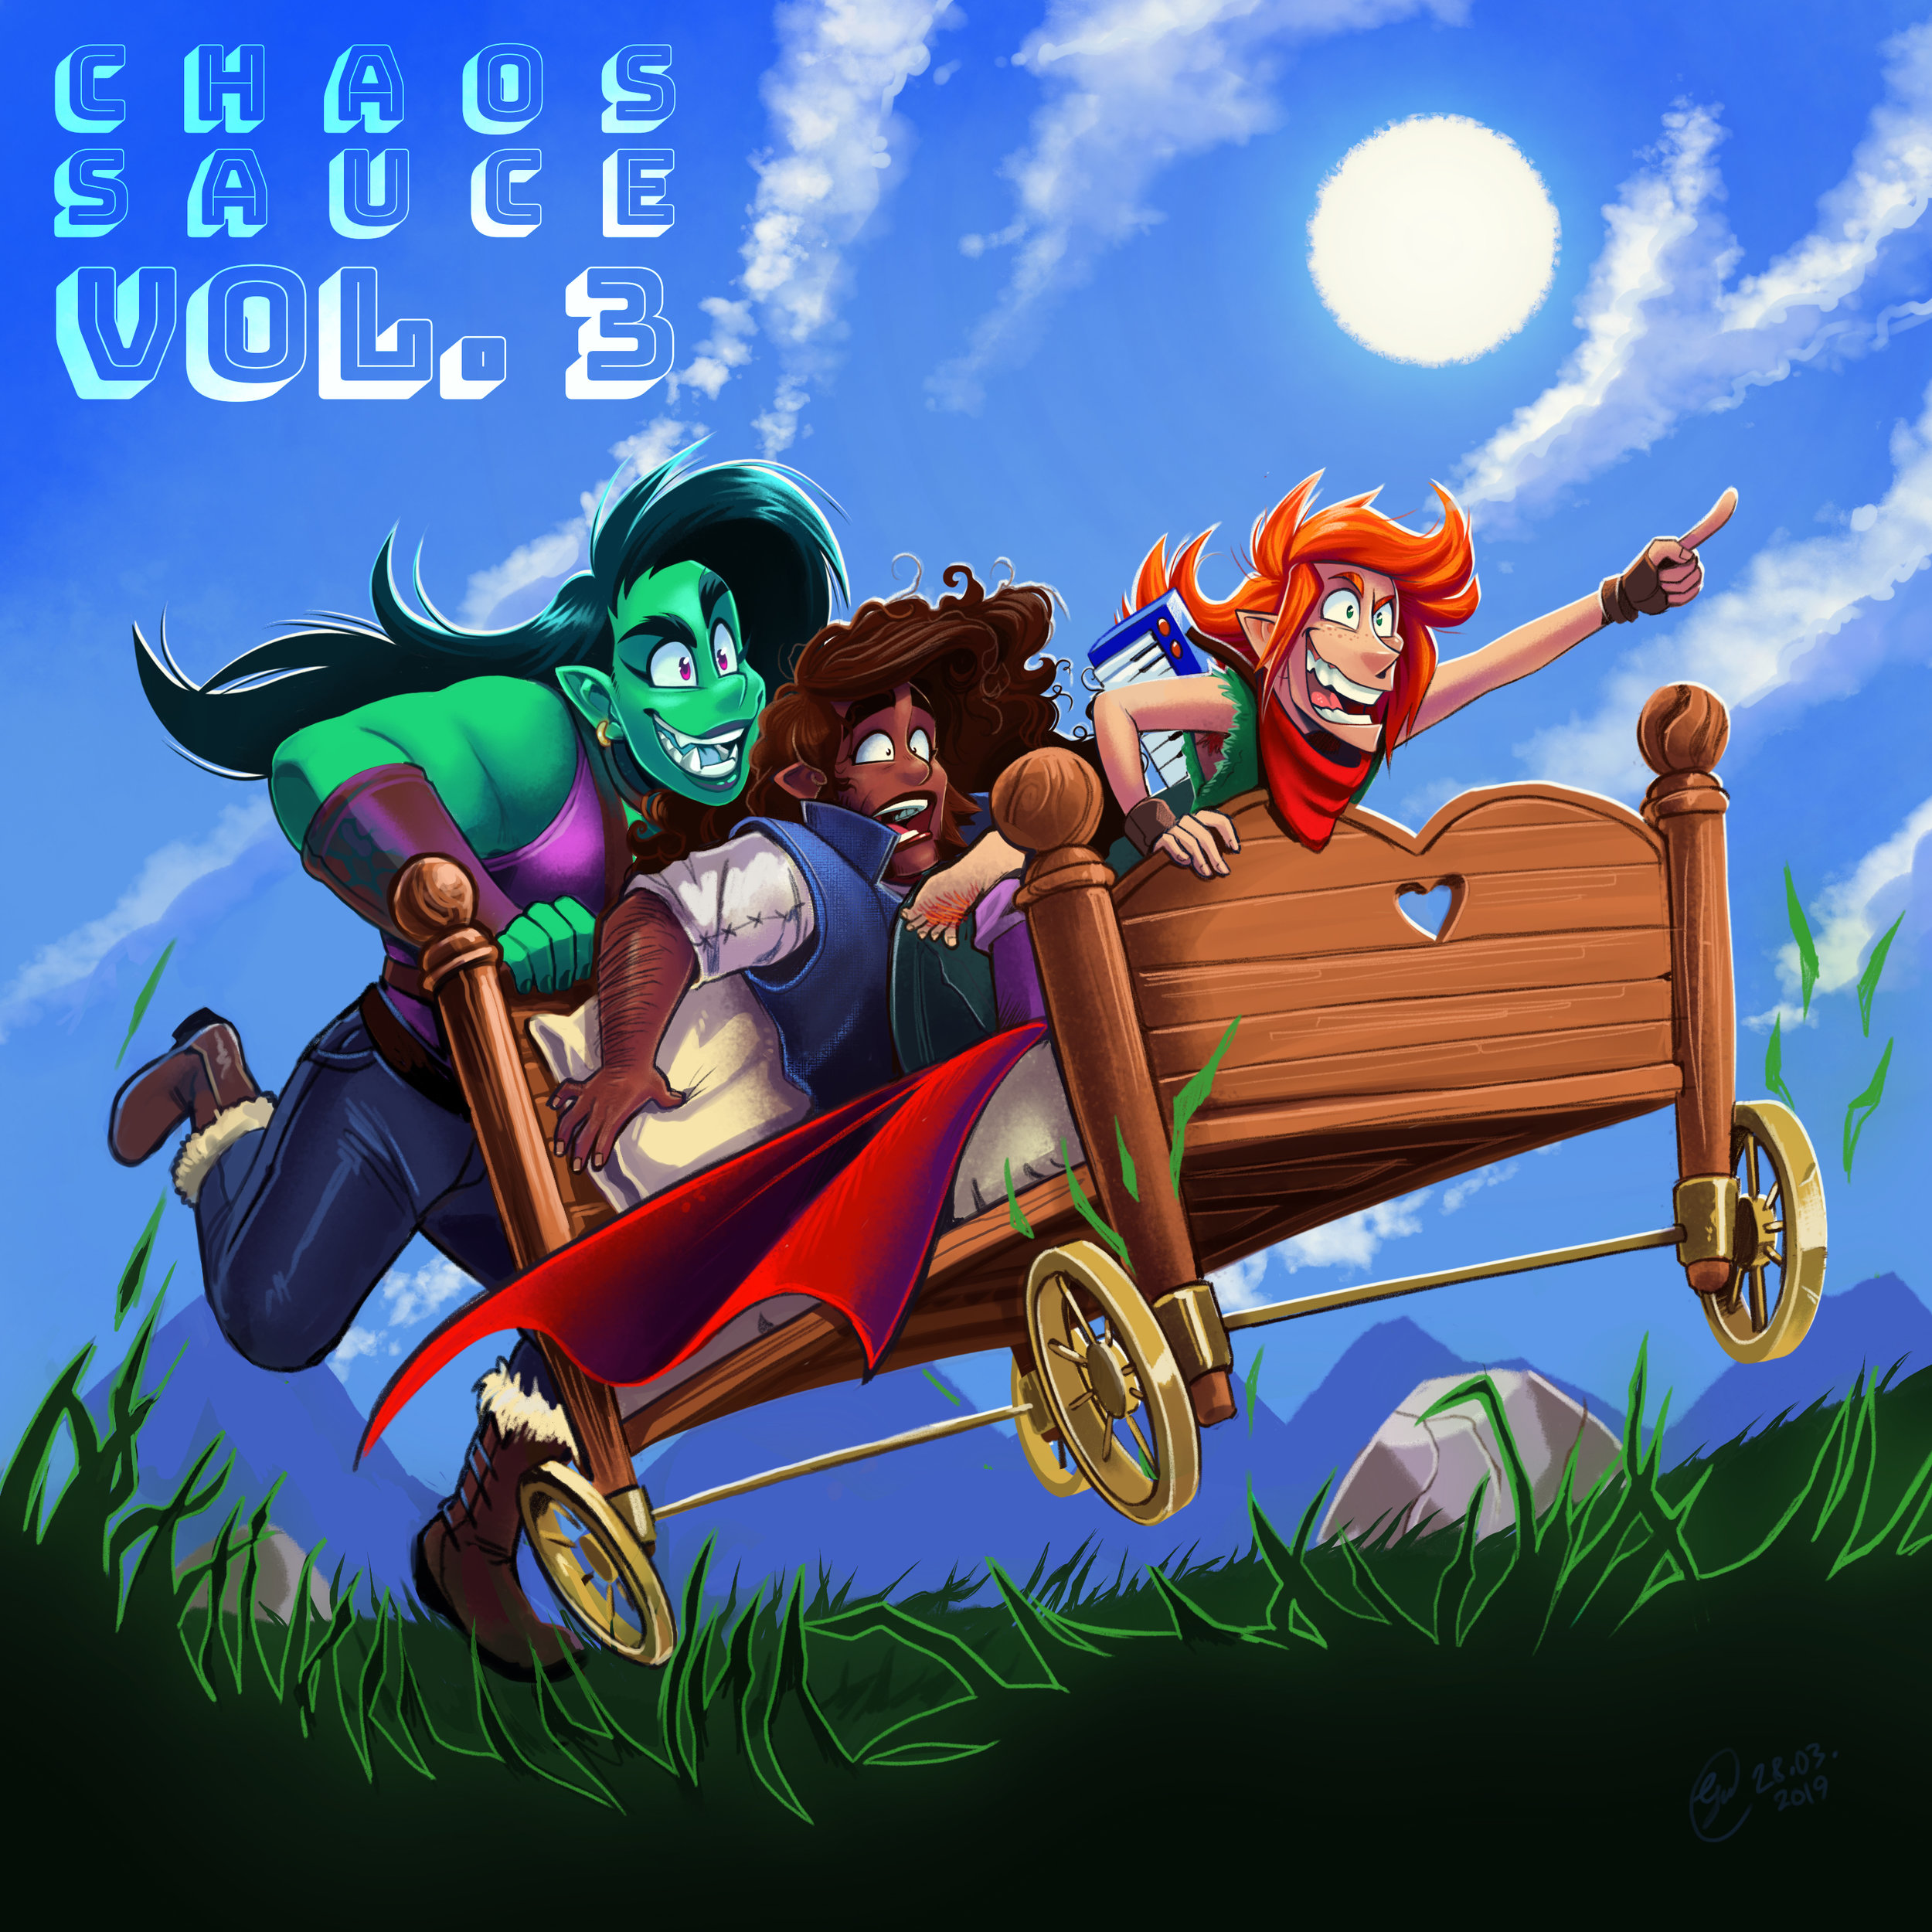 Chaos Sauce Vol 3 Album Art.JPG